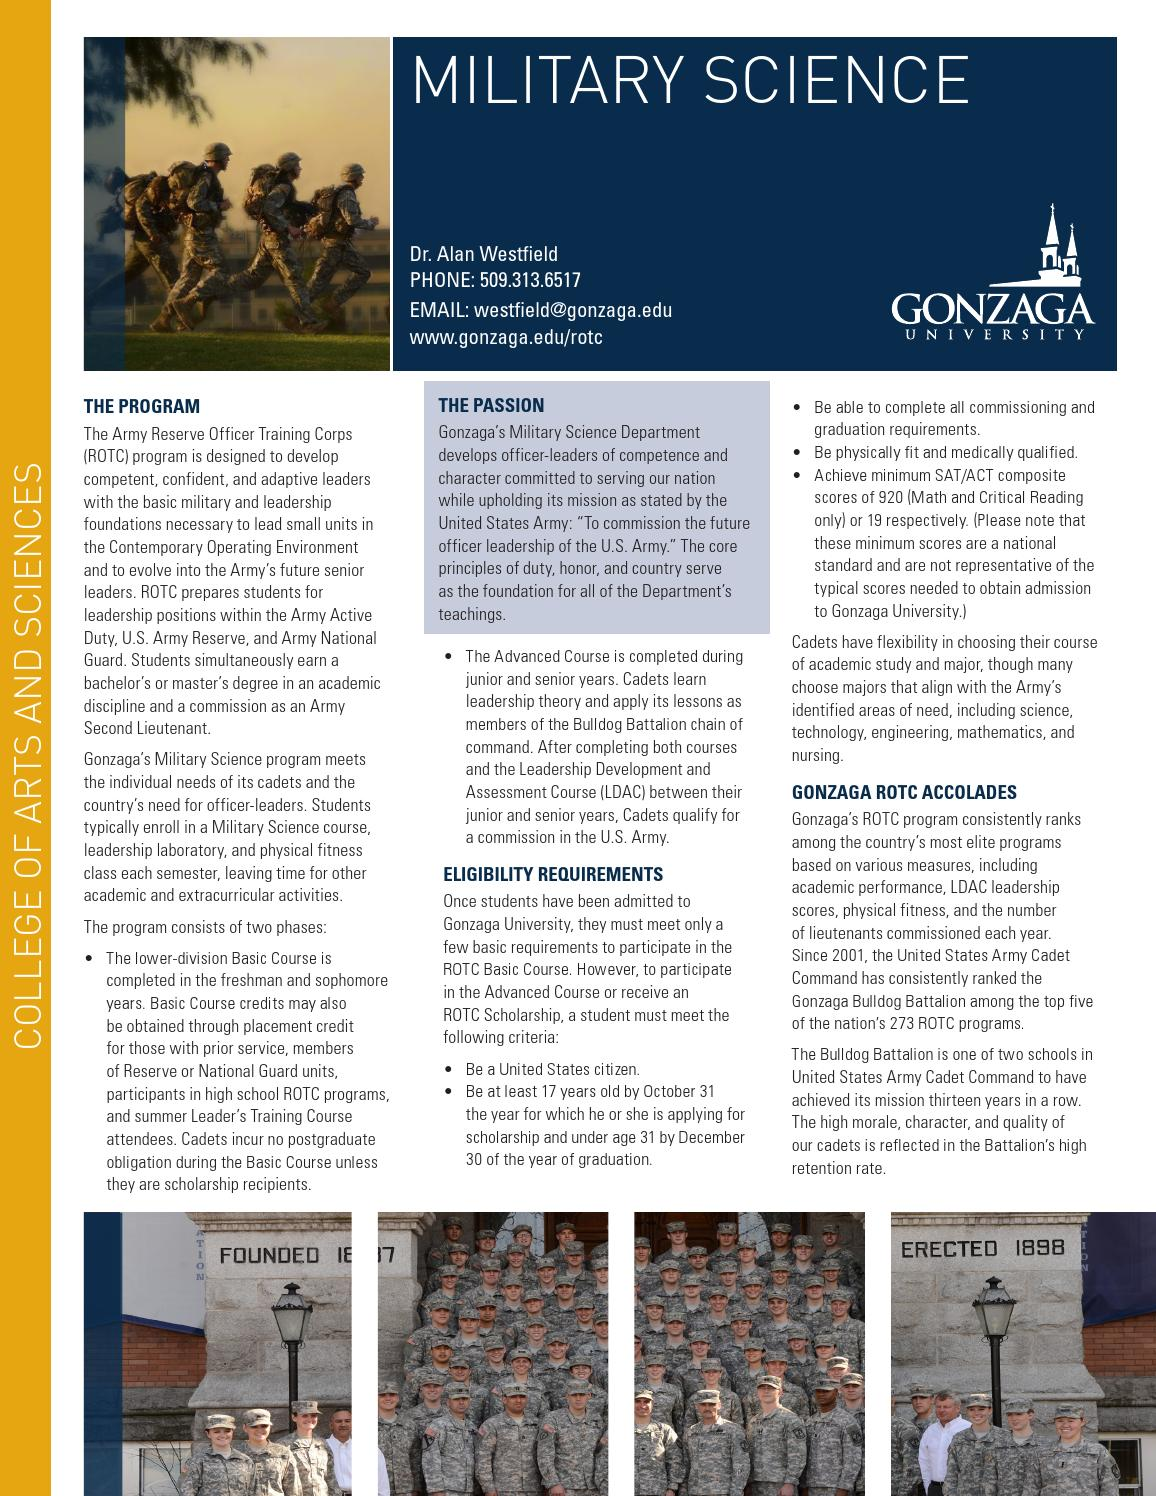 the nine basic principles of the united states army United states government accountability office highlights of gao-16-636, a report to congressional committees august 2016 army training table 2: gao definitions of nine training priority areas identified introduces a framework, consisting of a set of principles and key questions that federal.